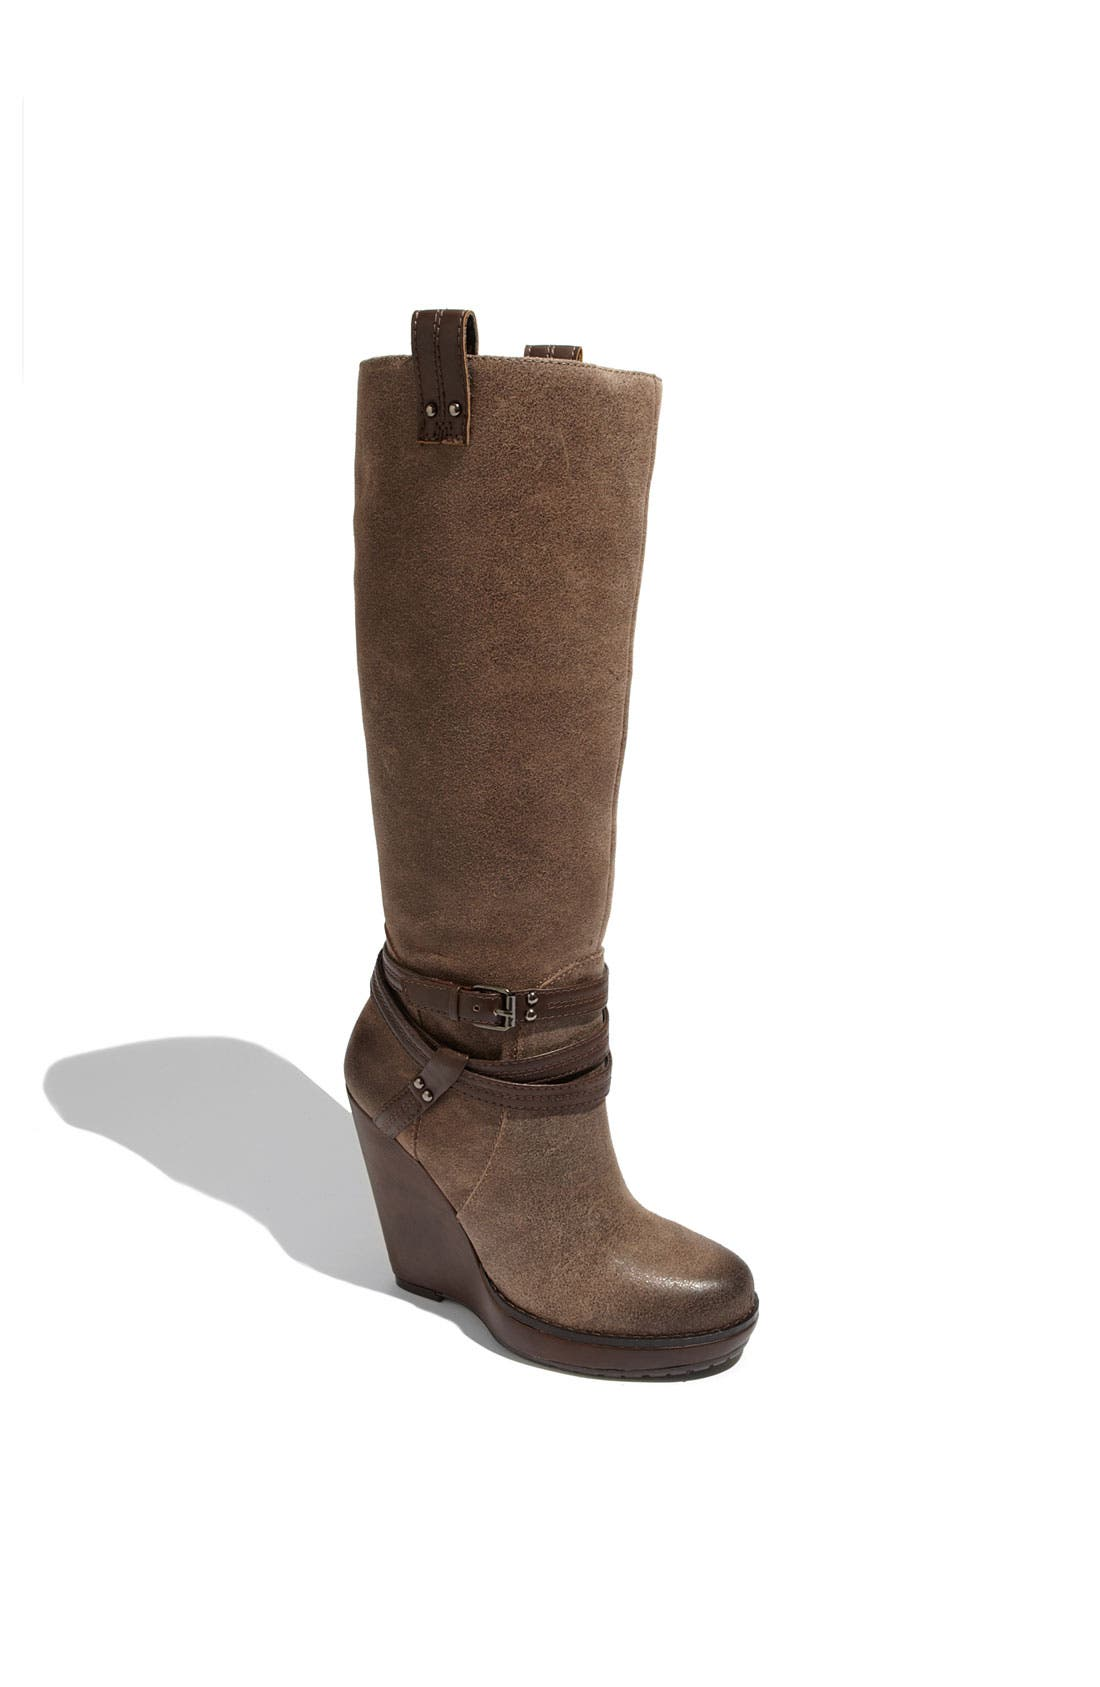 Alternate Image 1 Selected - Jessica Simpson 'Kit' Boot